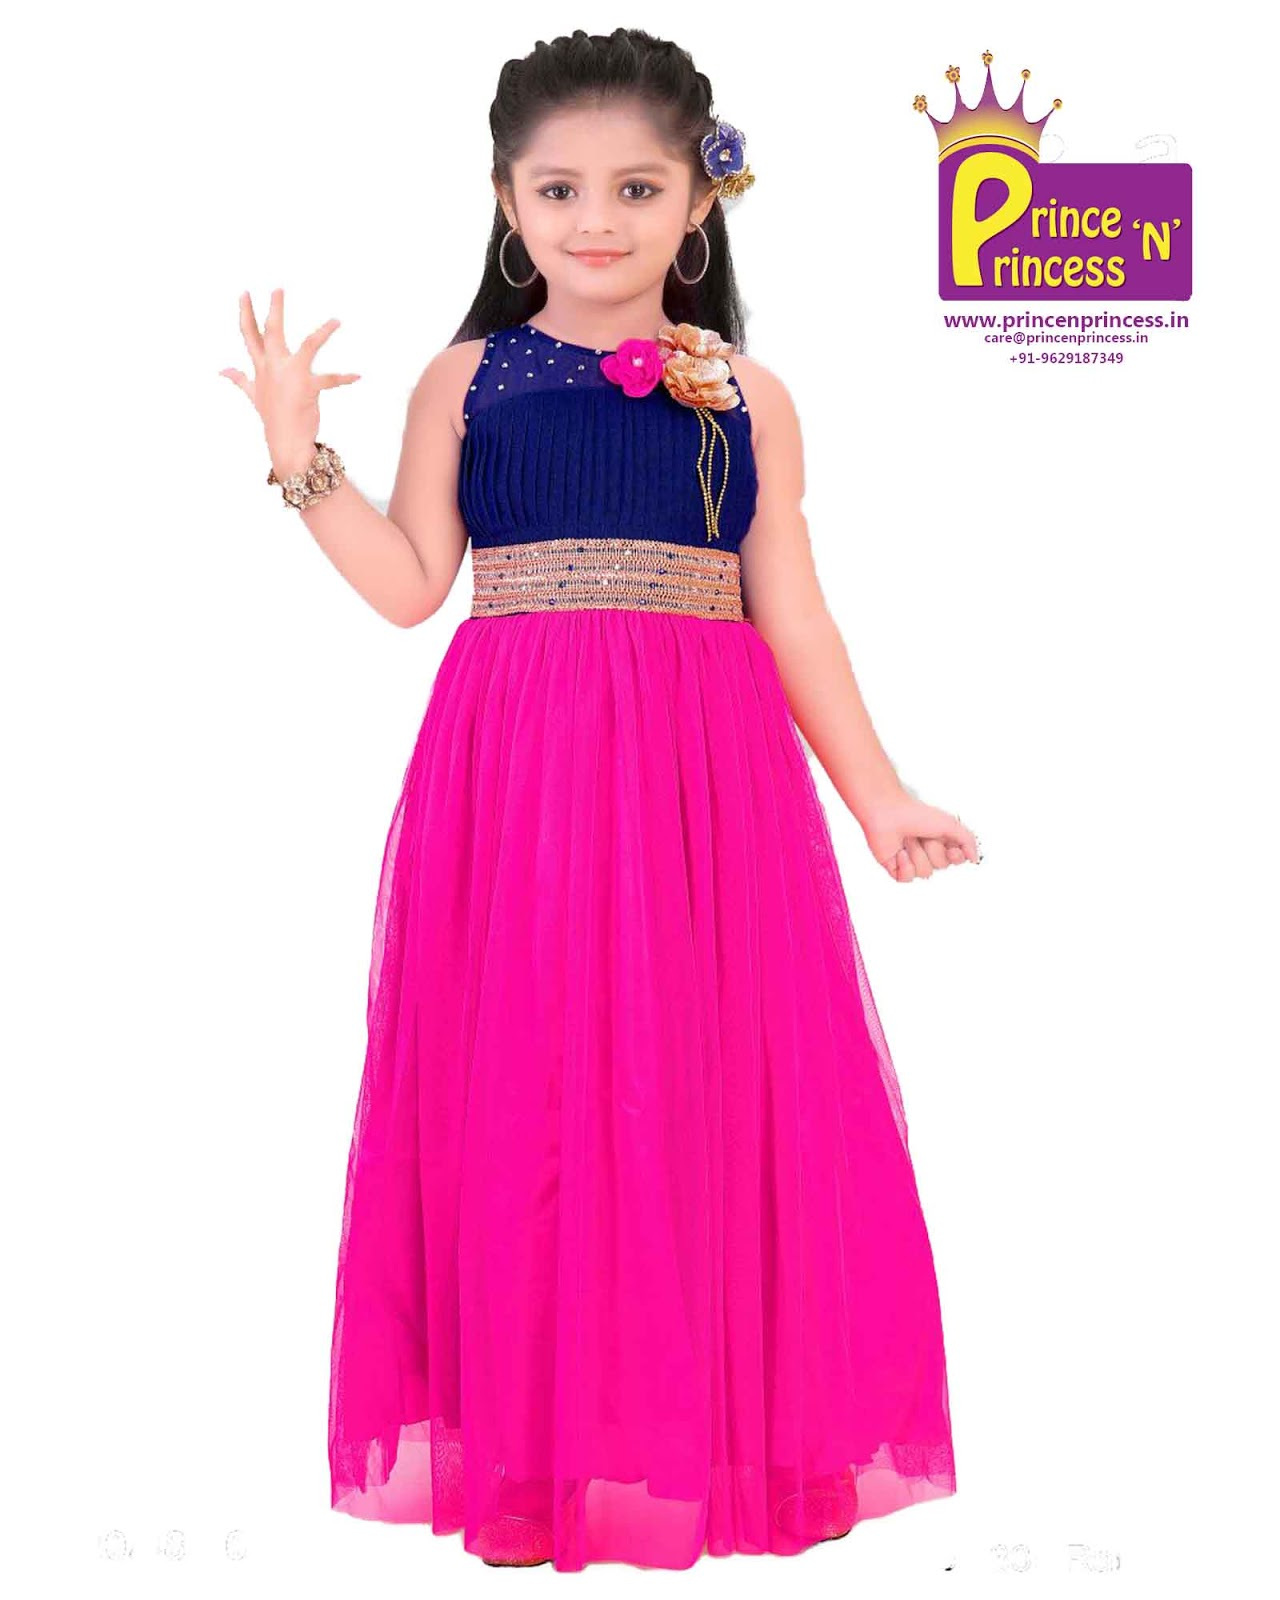 Prince N Princess: Kids Party Frock Gown